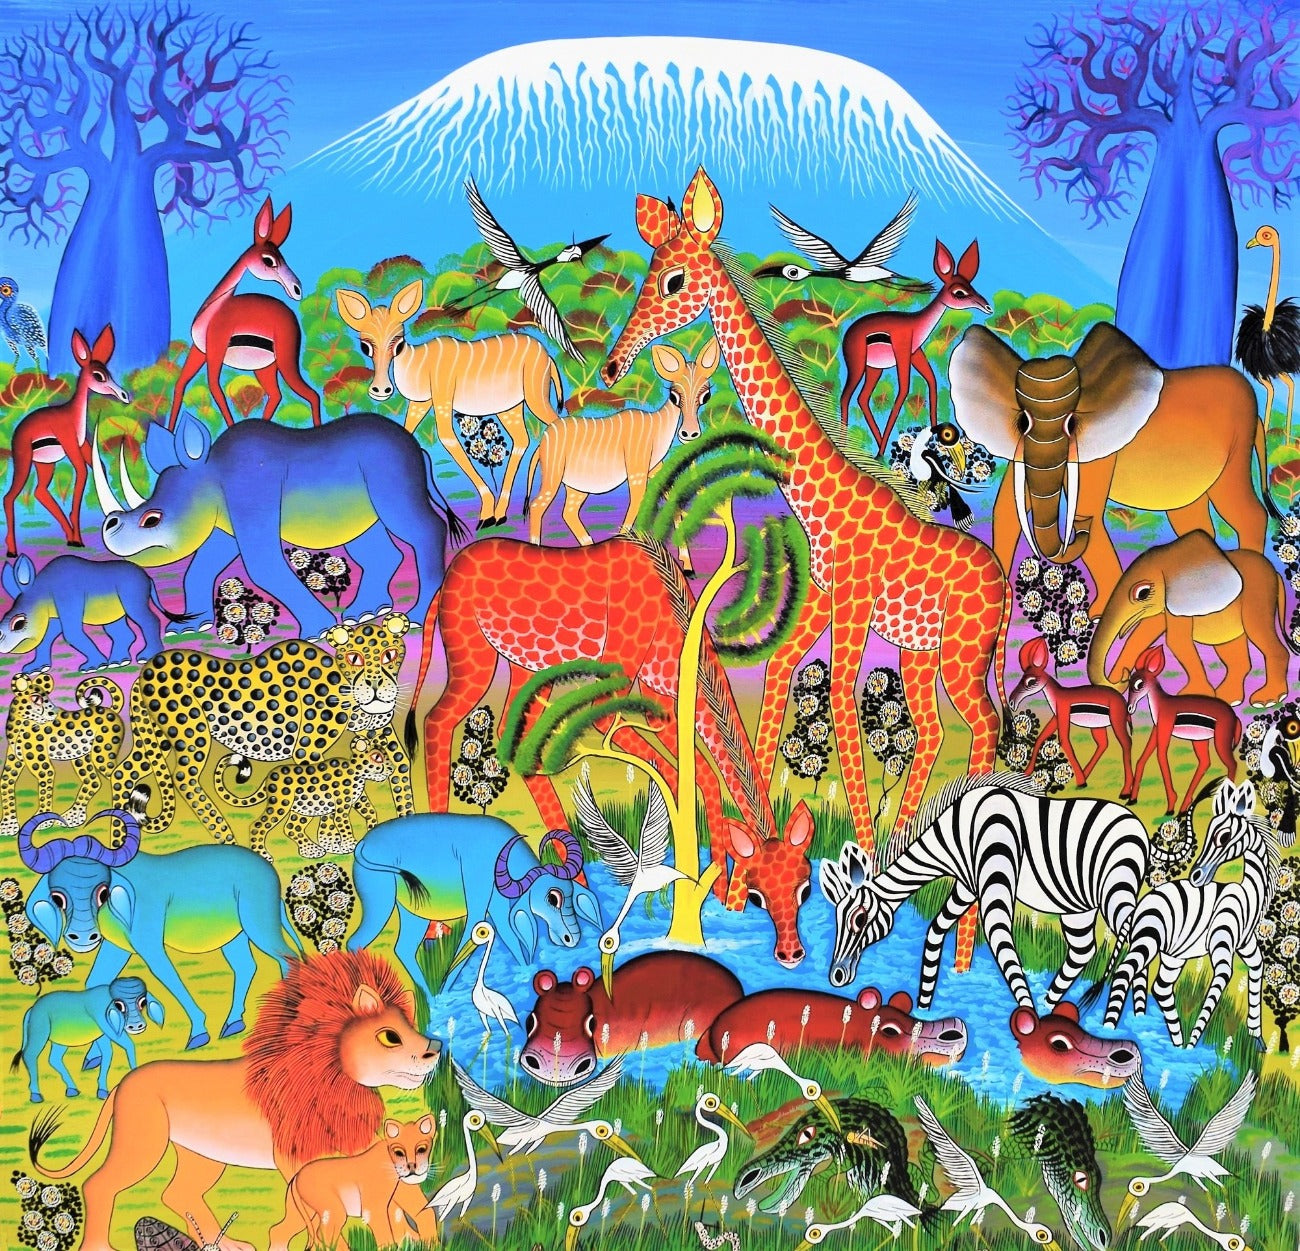 african art of animals near the kilimanjaro